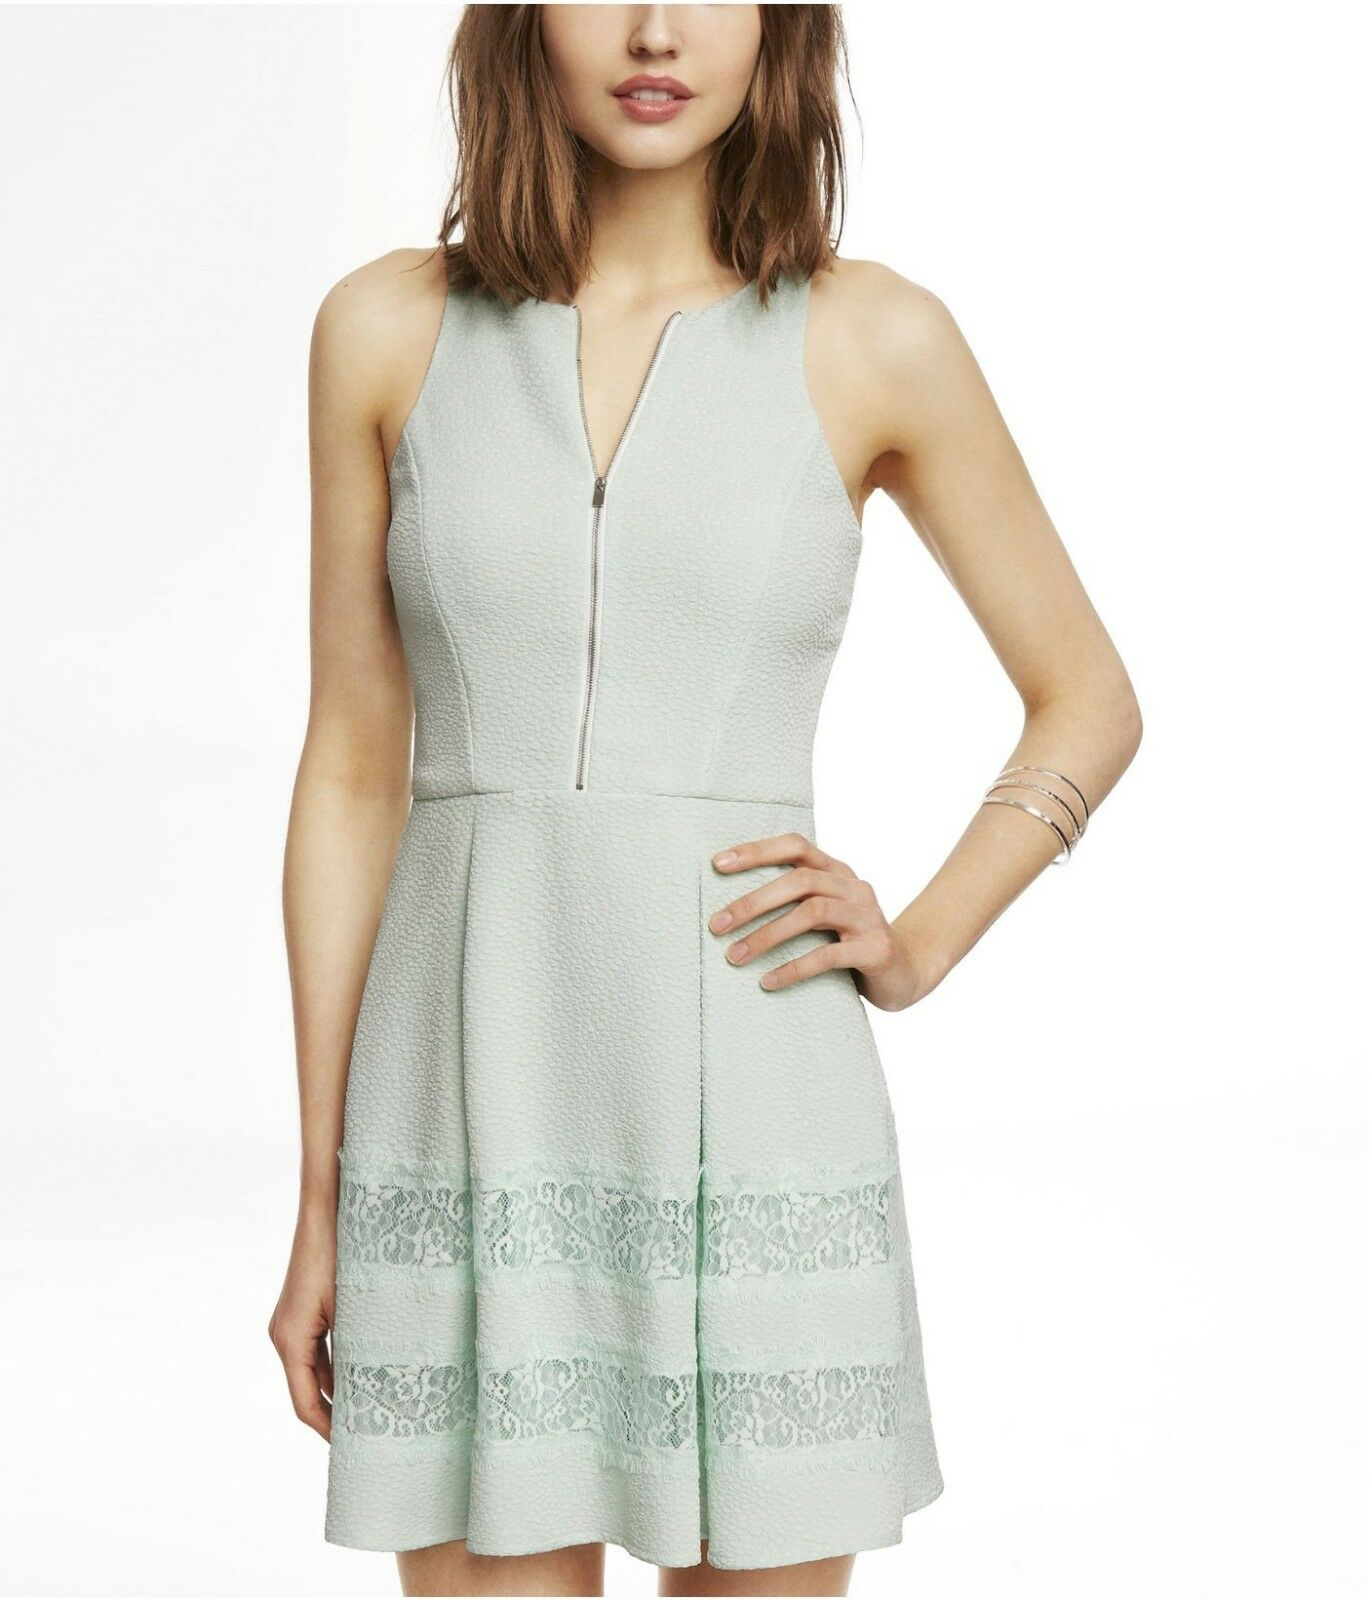 EXPRESS Women's Mint Zip Front Lace Insert Textured Fit and Flare Dress Size 6